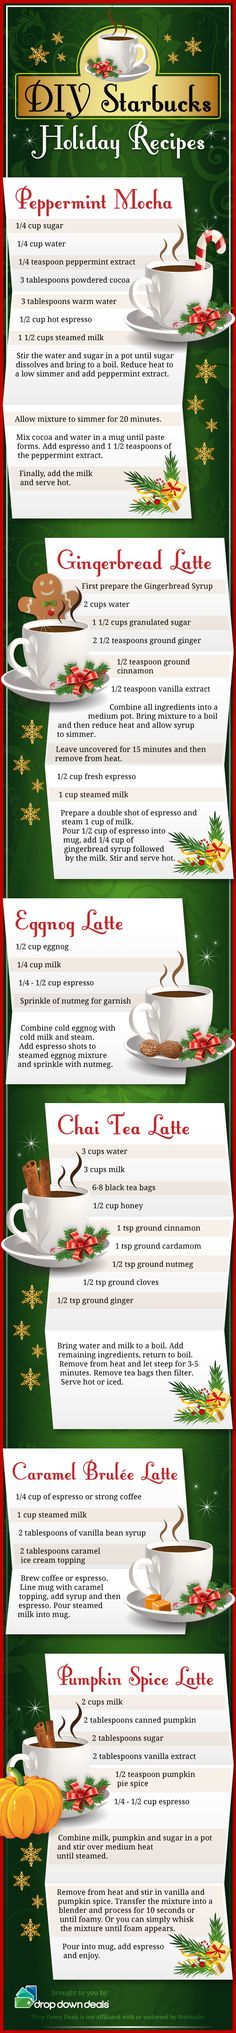 DIY Starbucks holiday drink recipes. perfect for a cold winter night at home.